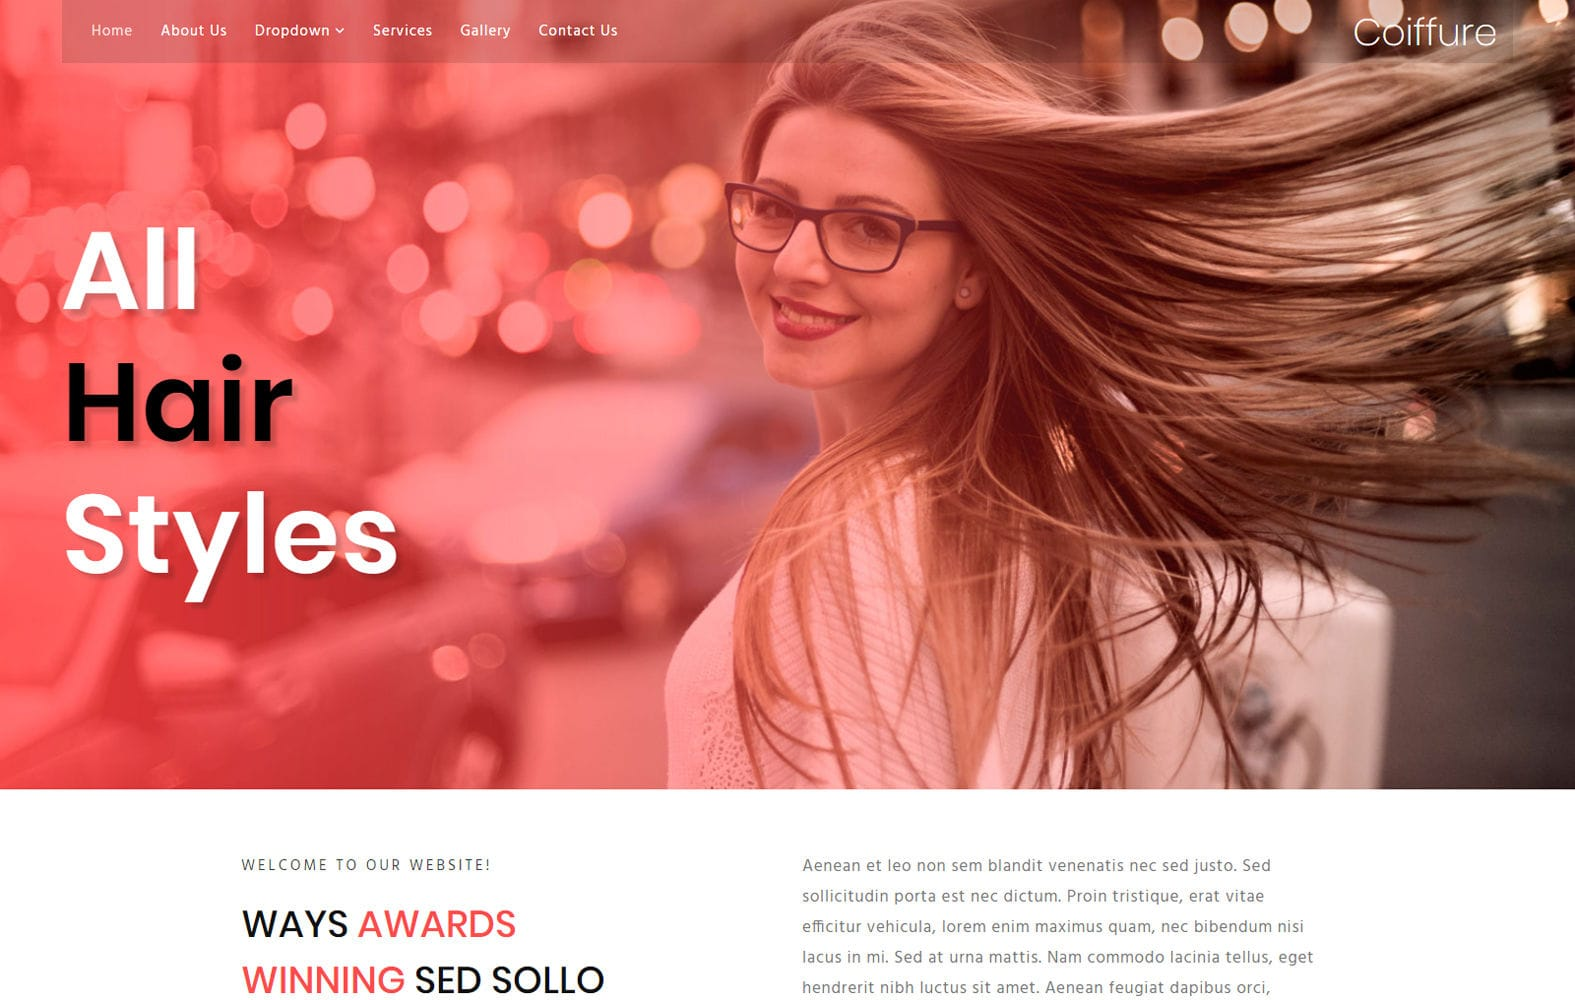 Coiffure a Beauty and Spa Category Bootstrap Responsive Web Template Mobile website template Free